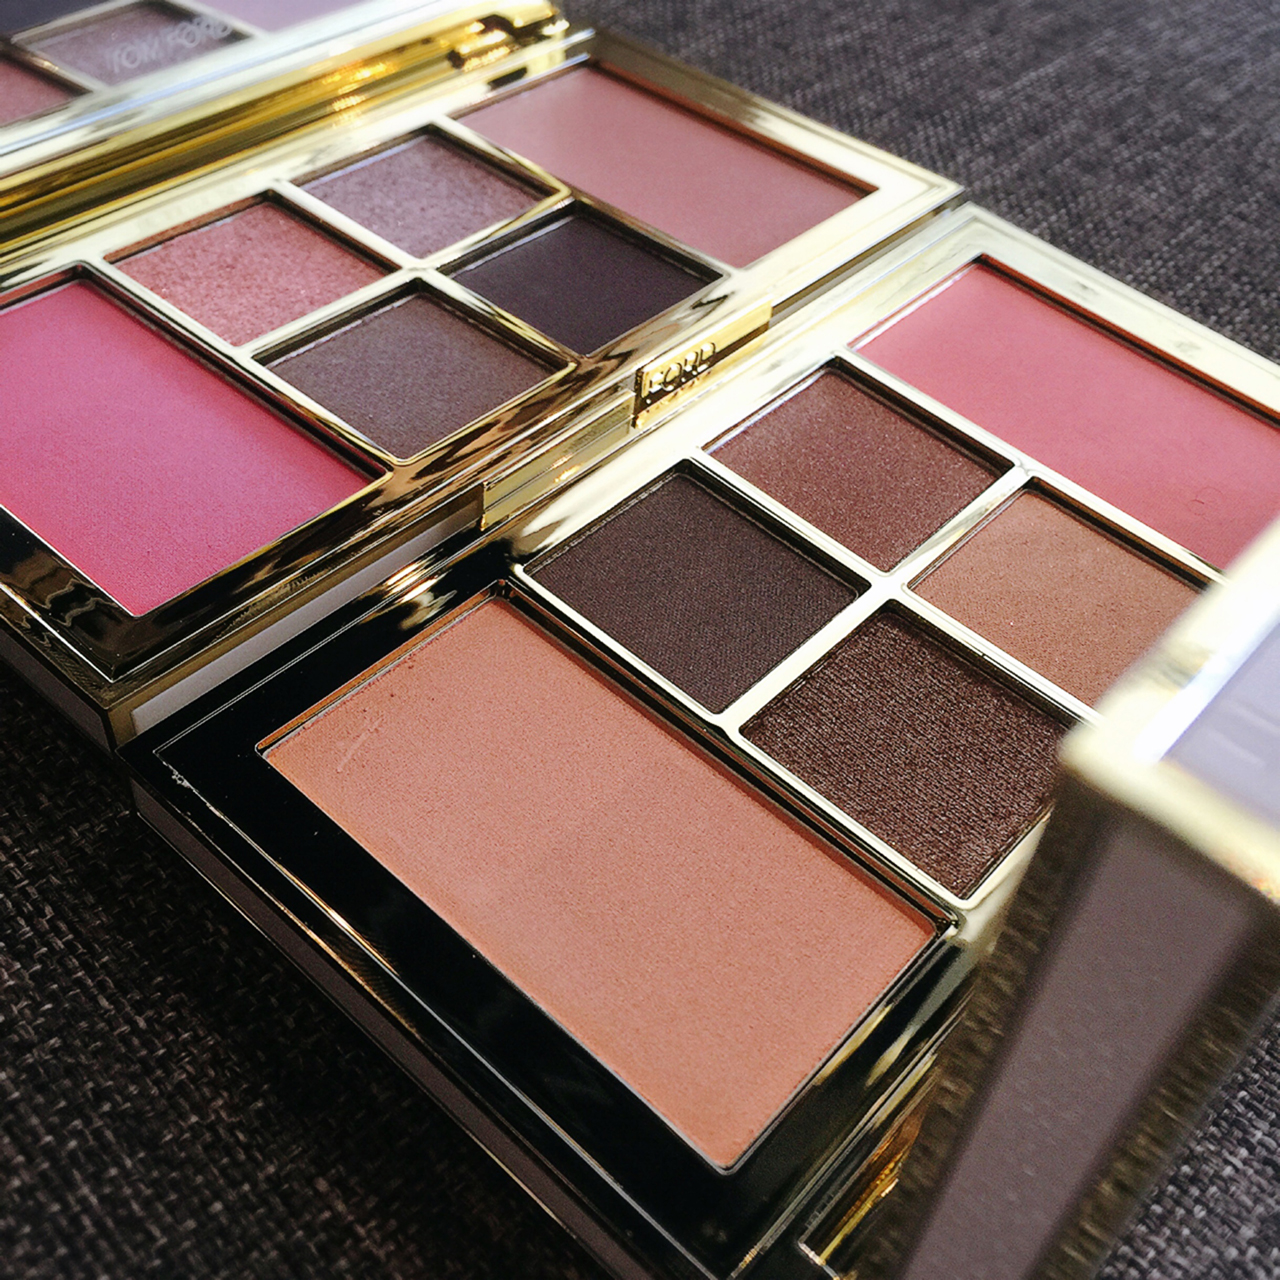 tom ford winter soleil warm-toned palette